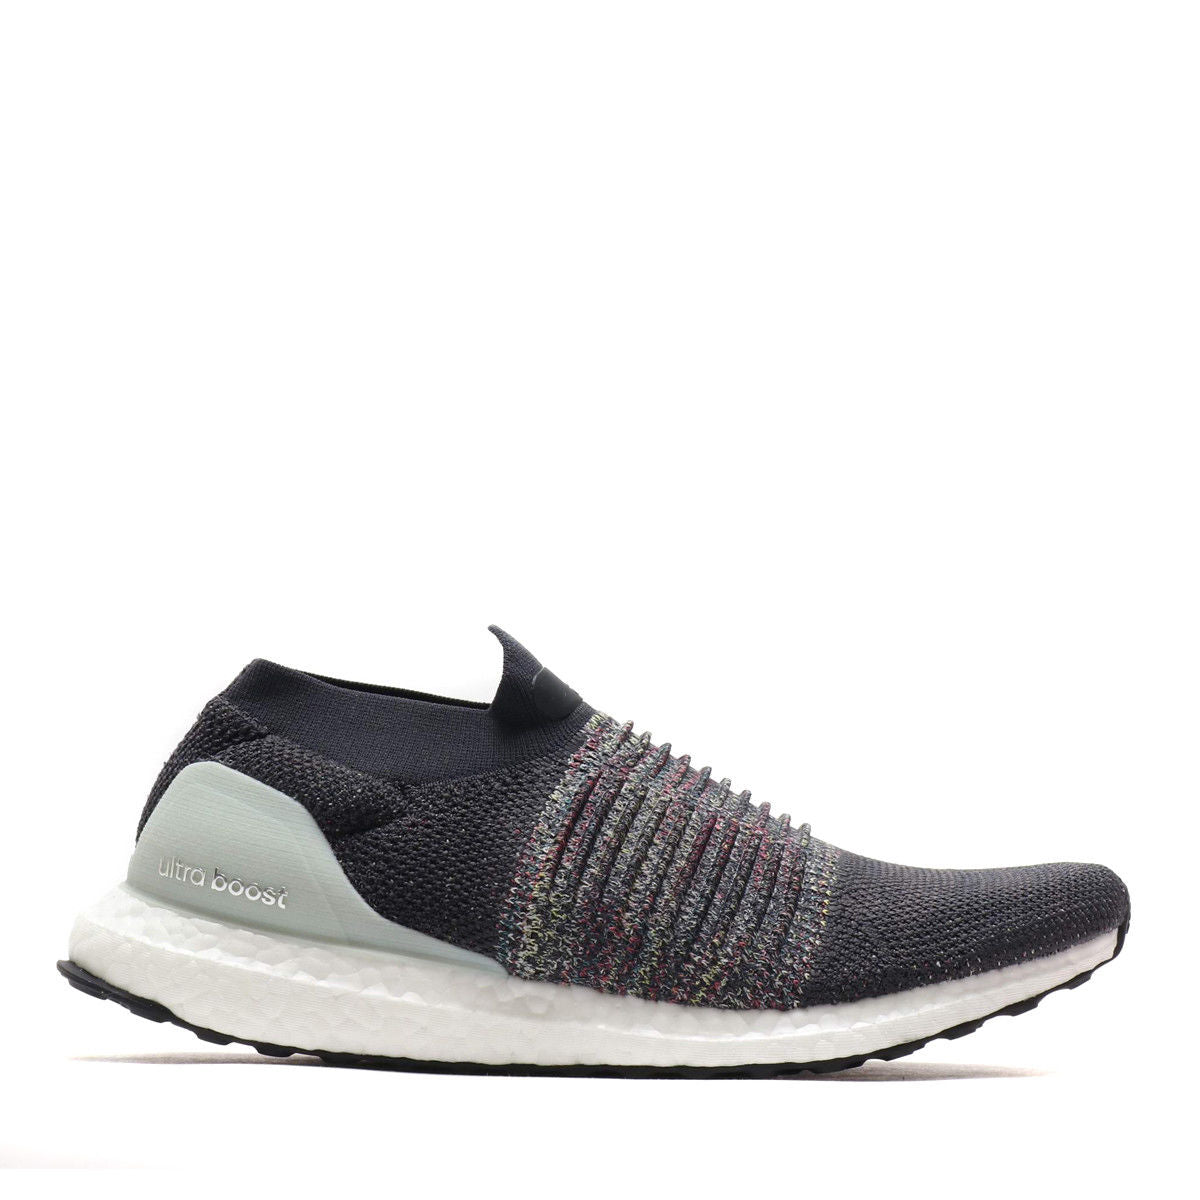 New adidas ultra boost laceless carbon